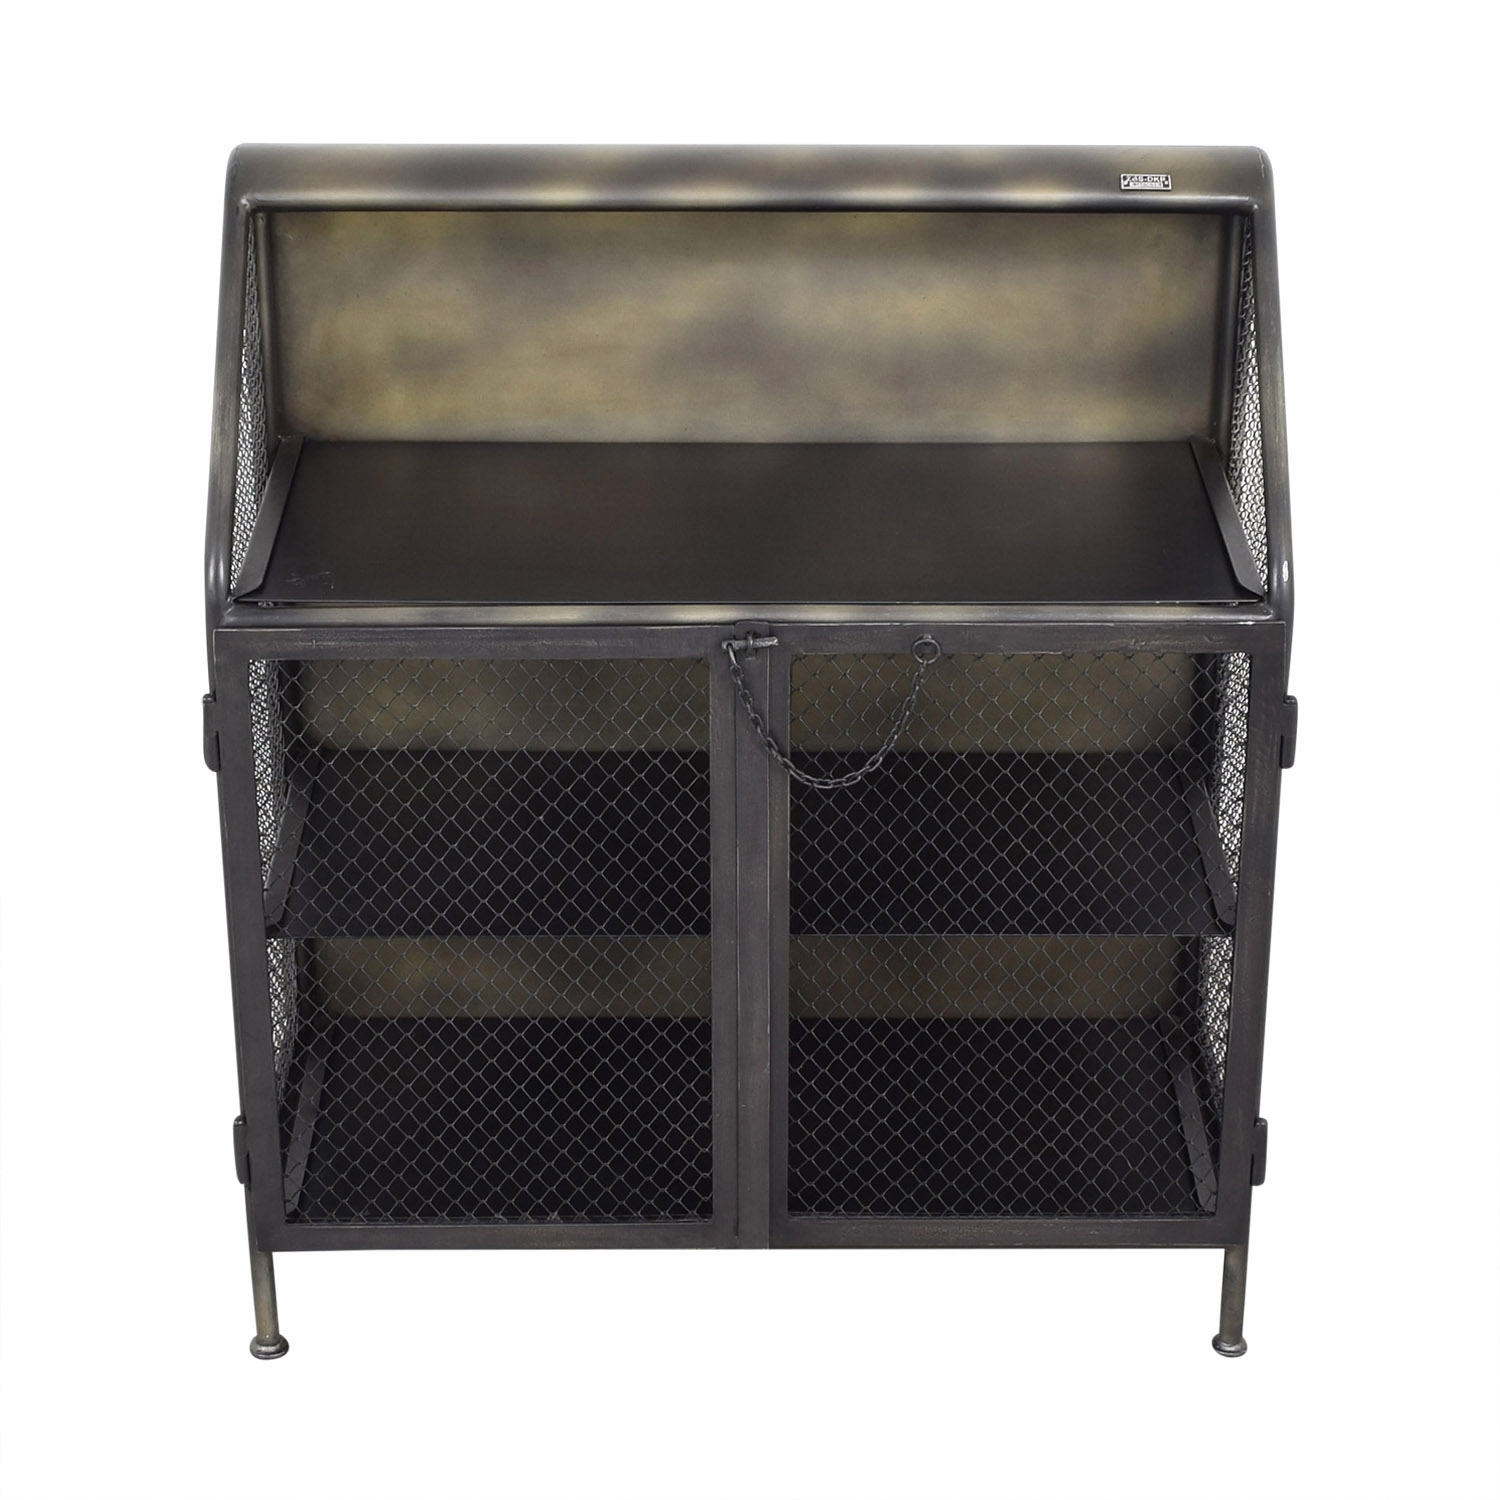 Restoration Hardware Restoration Hardware Vintage French Factory Bar Cart for sale